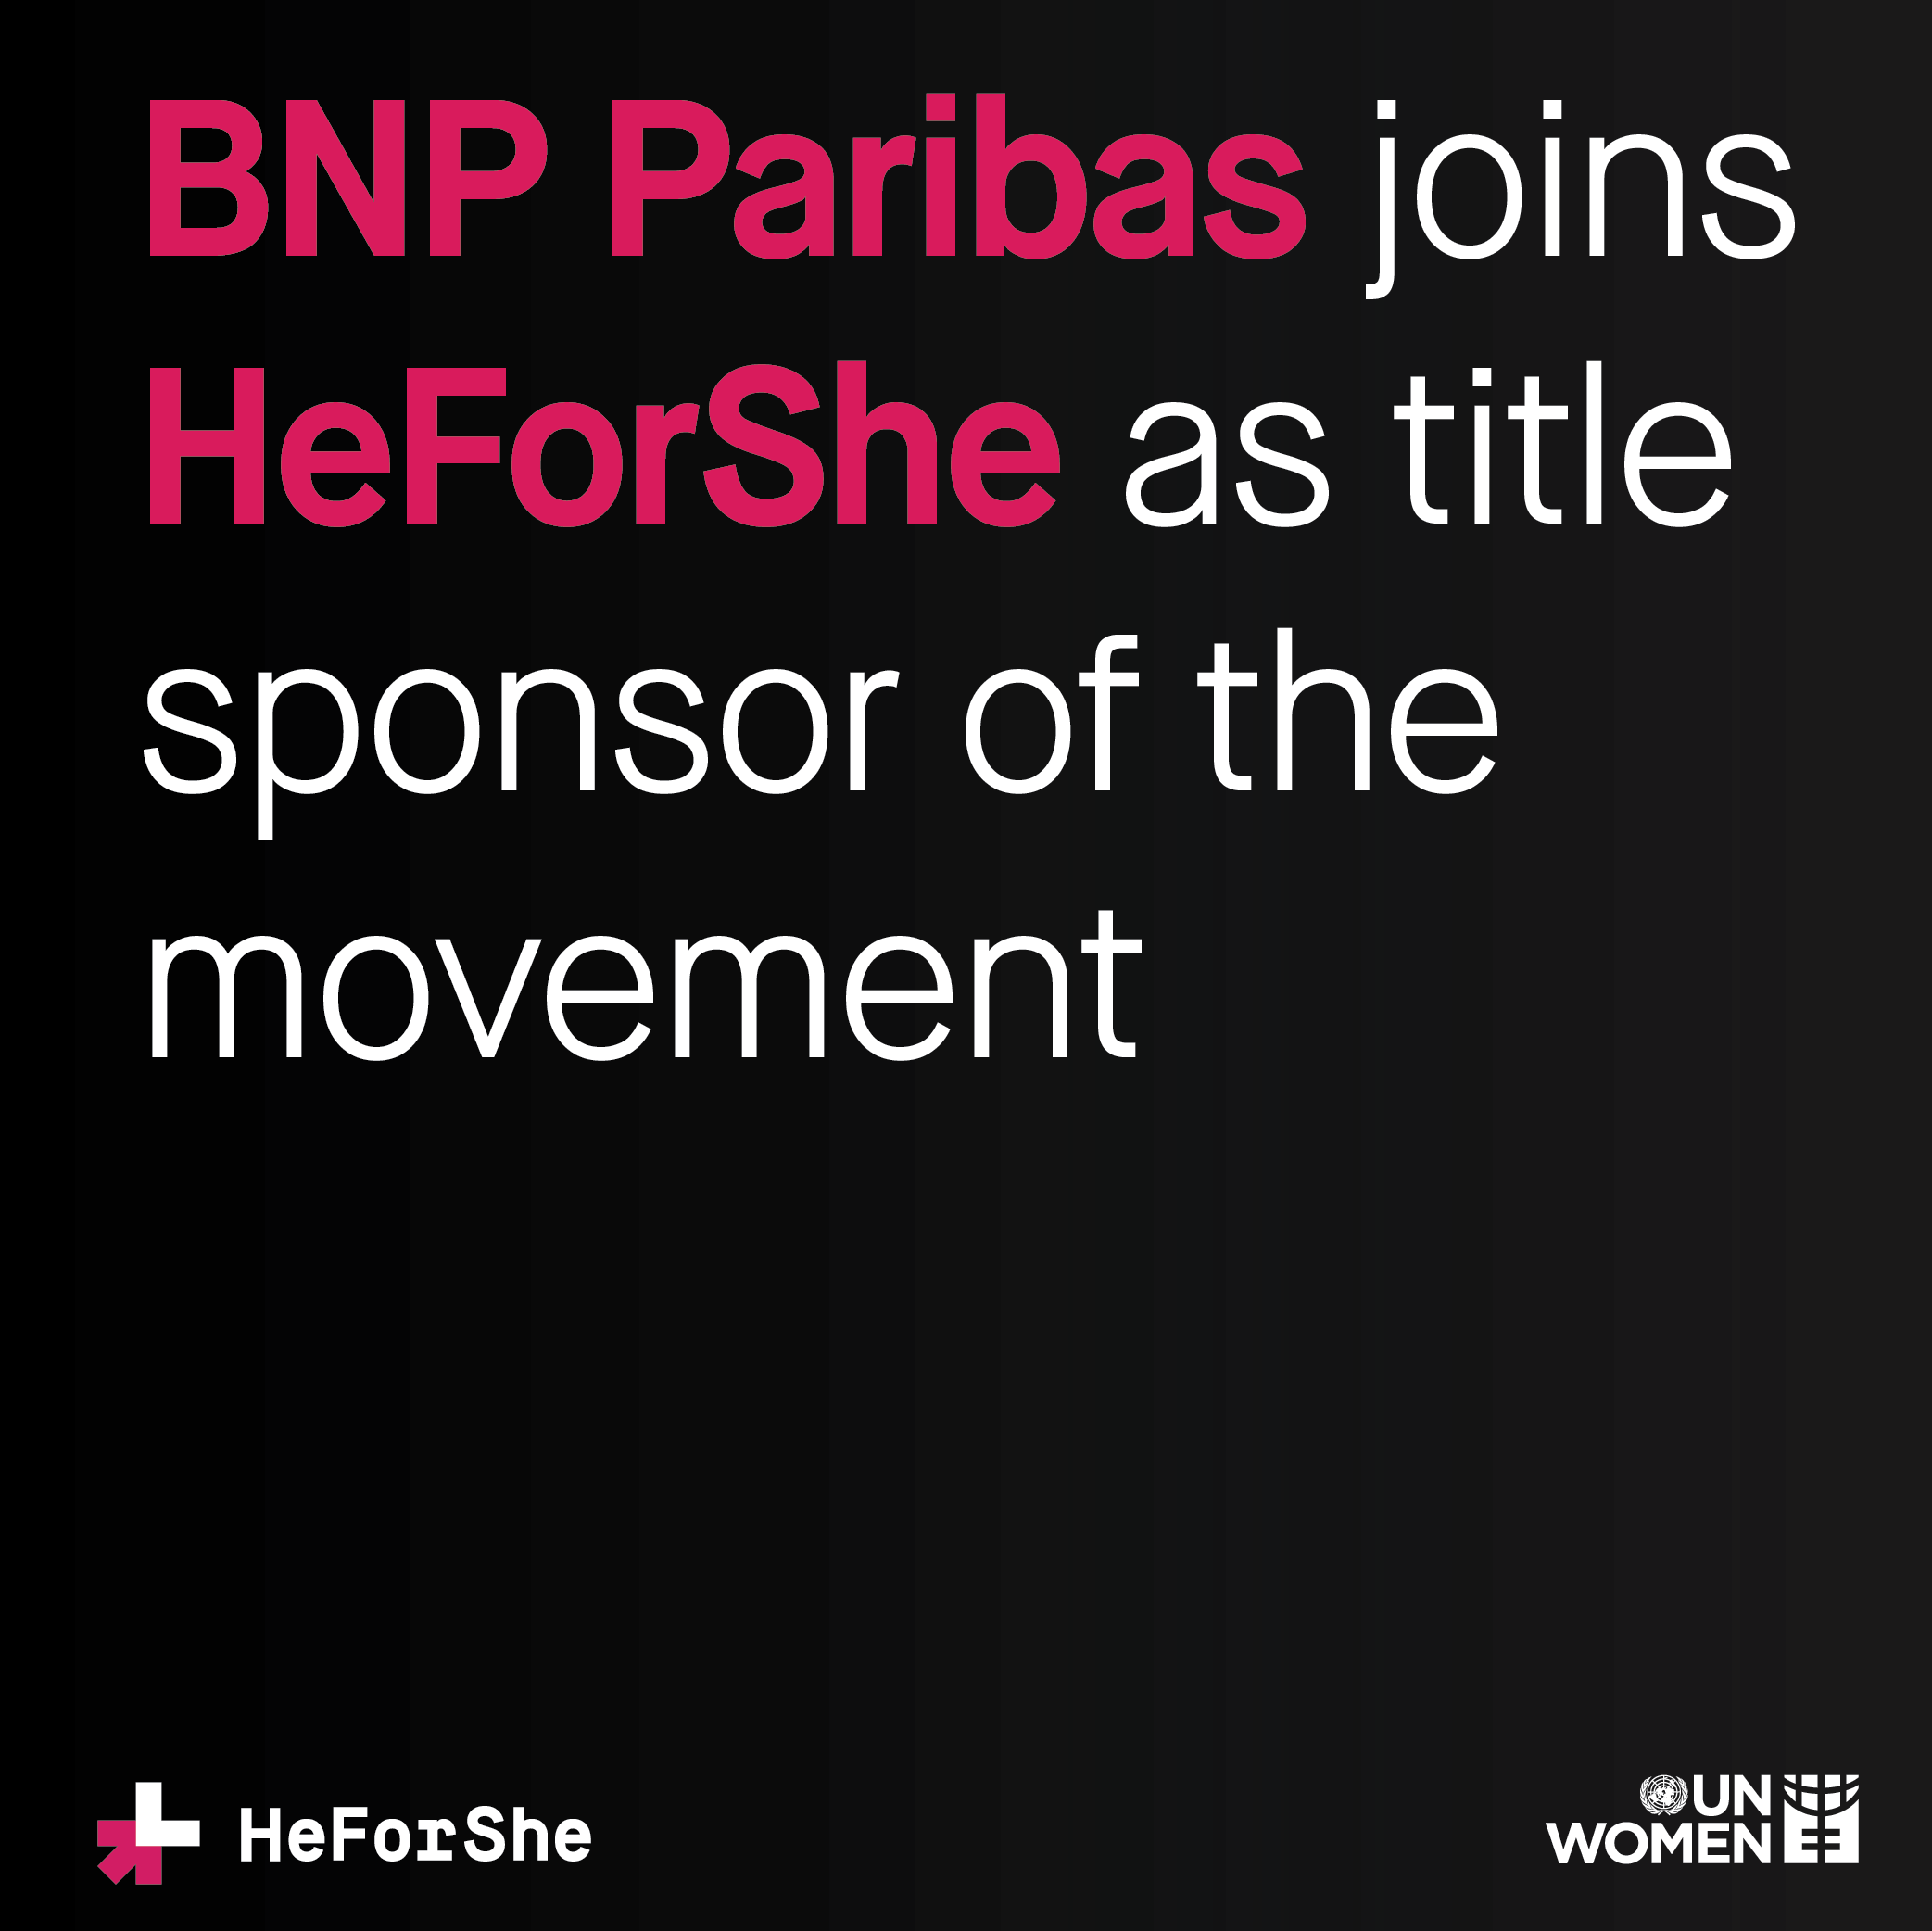 BNP Paribas joins HeForShe as the sponsor of the movement